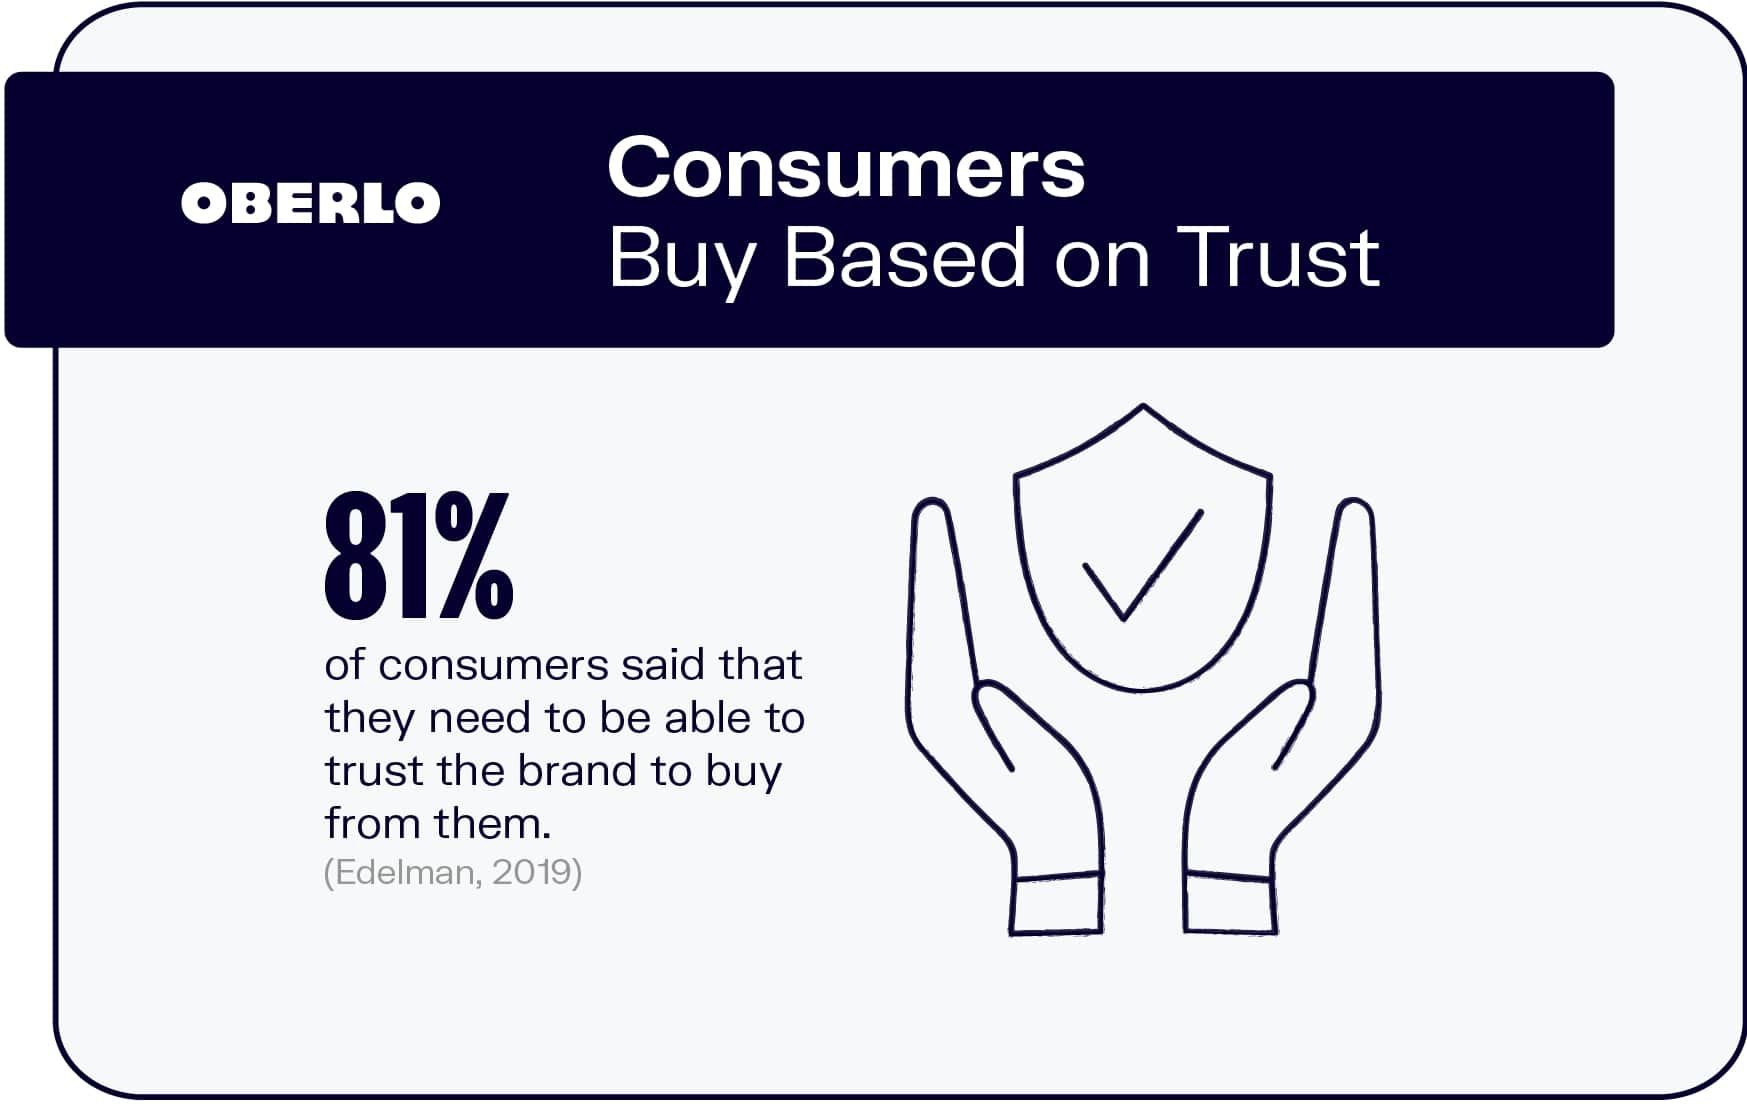 Consumers Buy Based on Trust